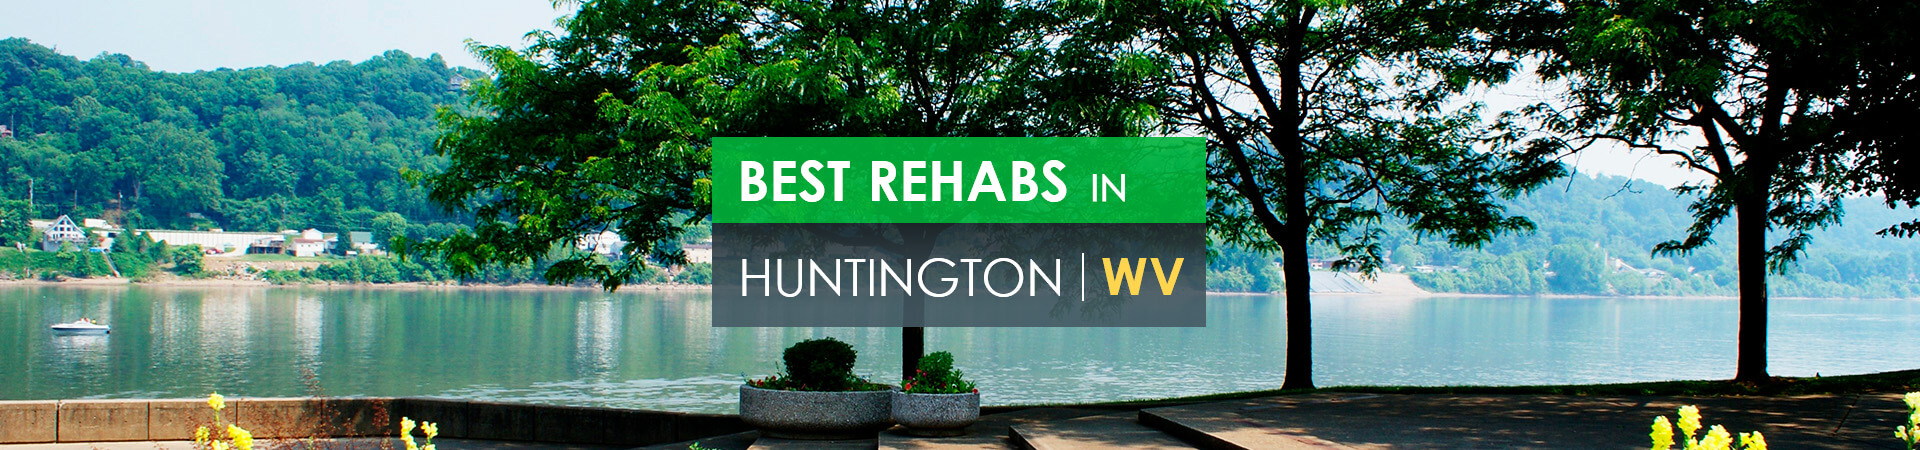 Best rehabs in Huntington, WV